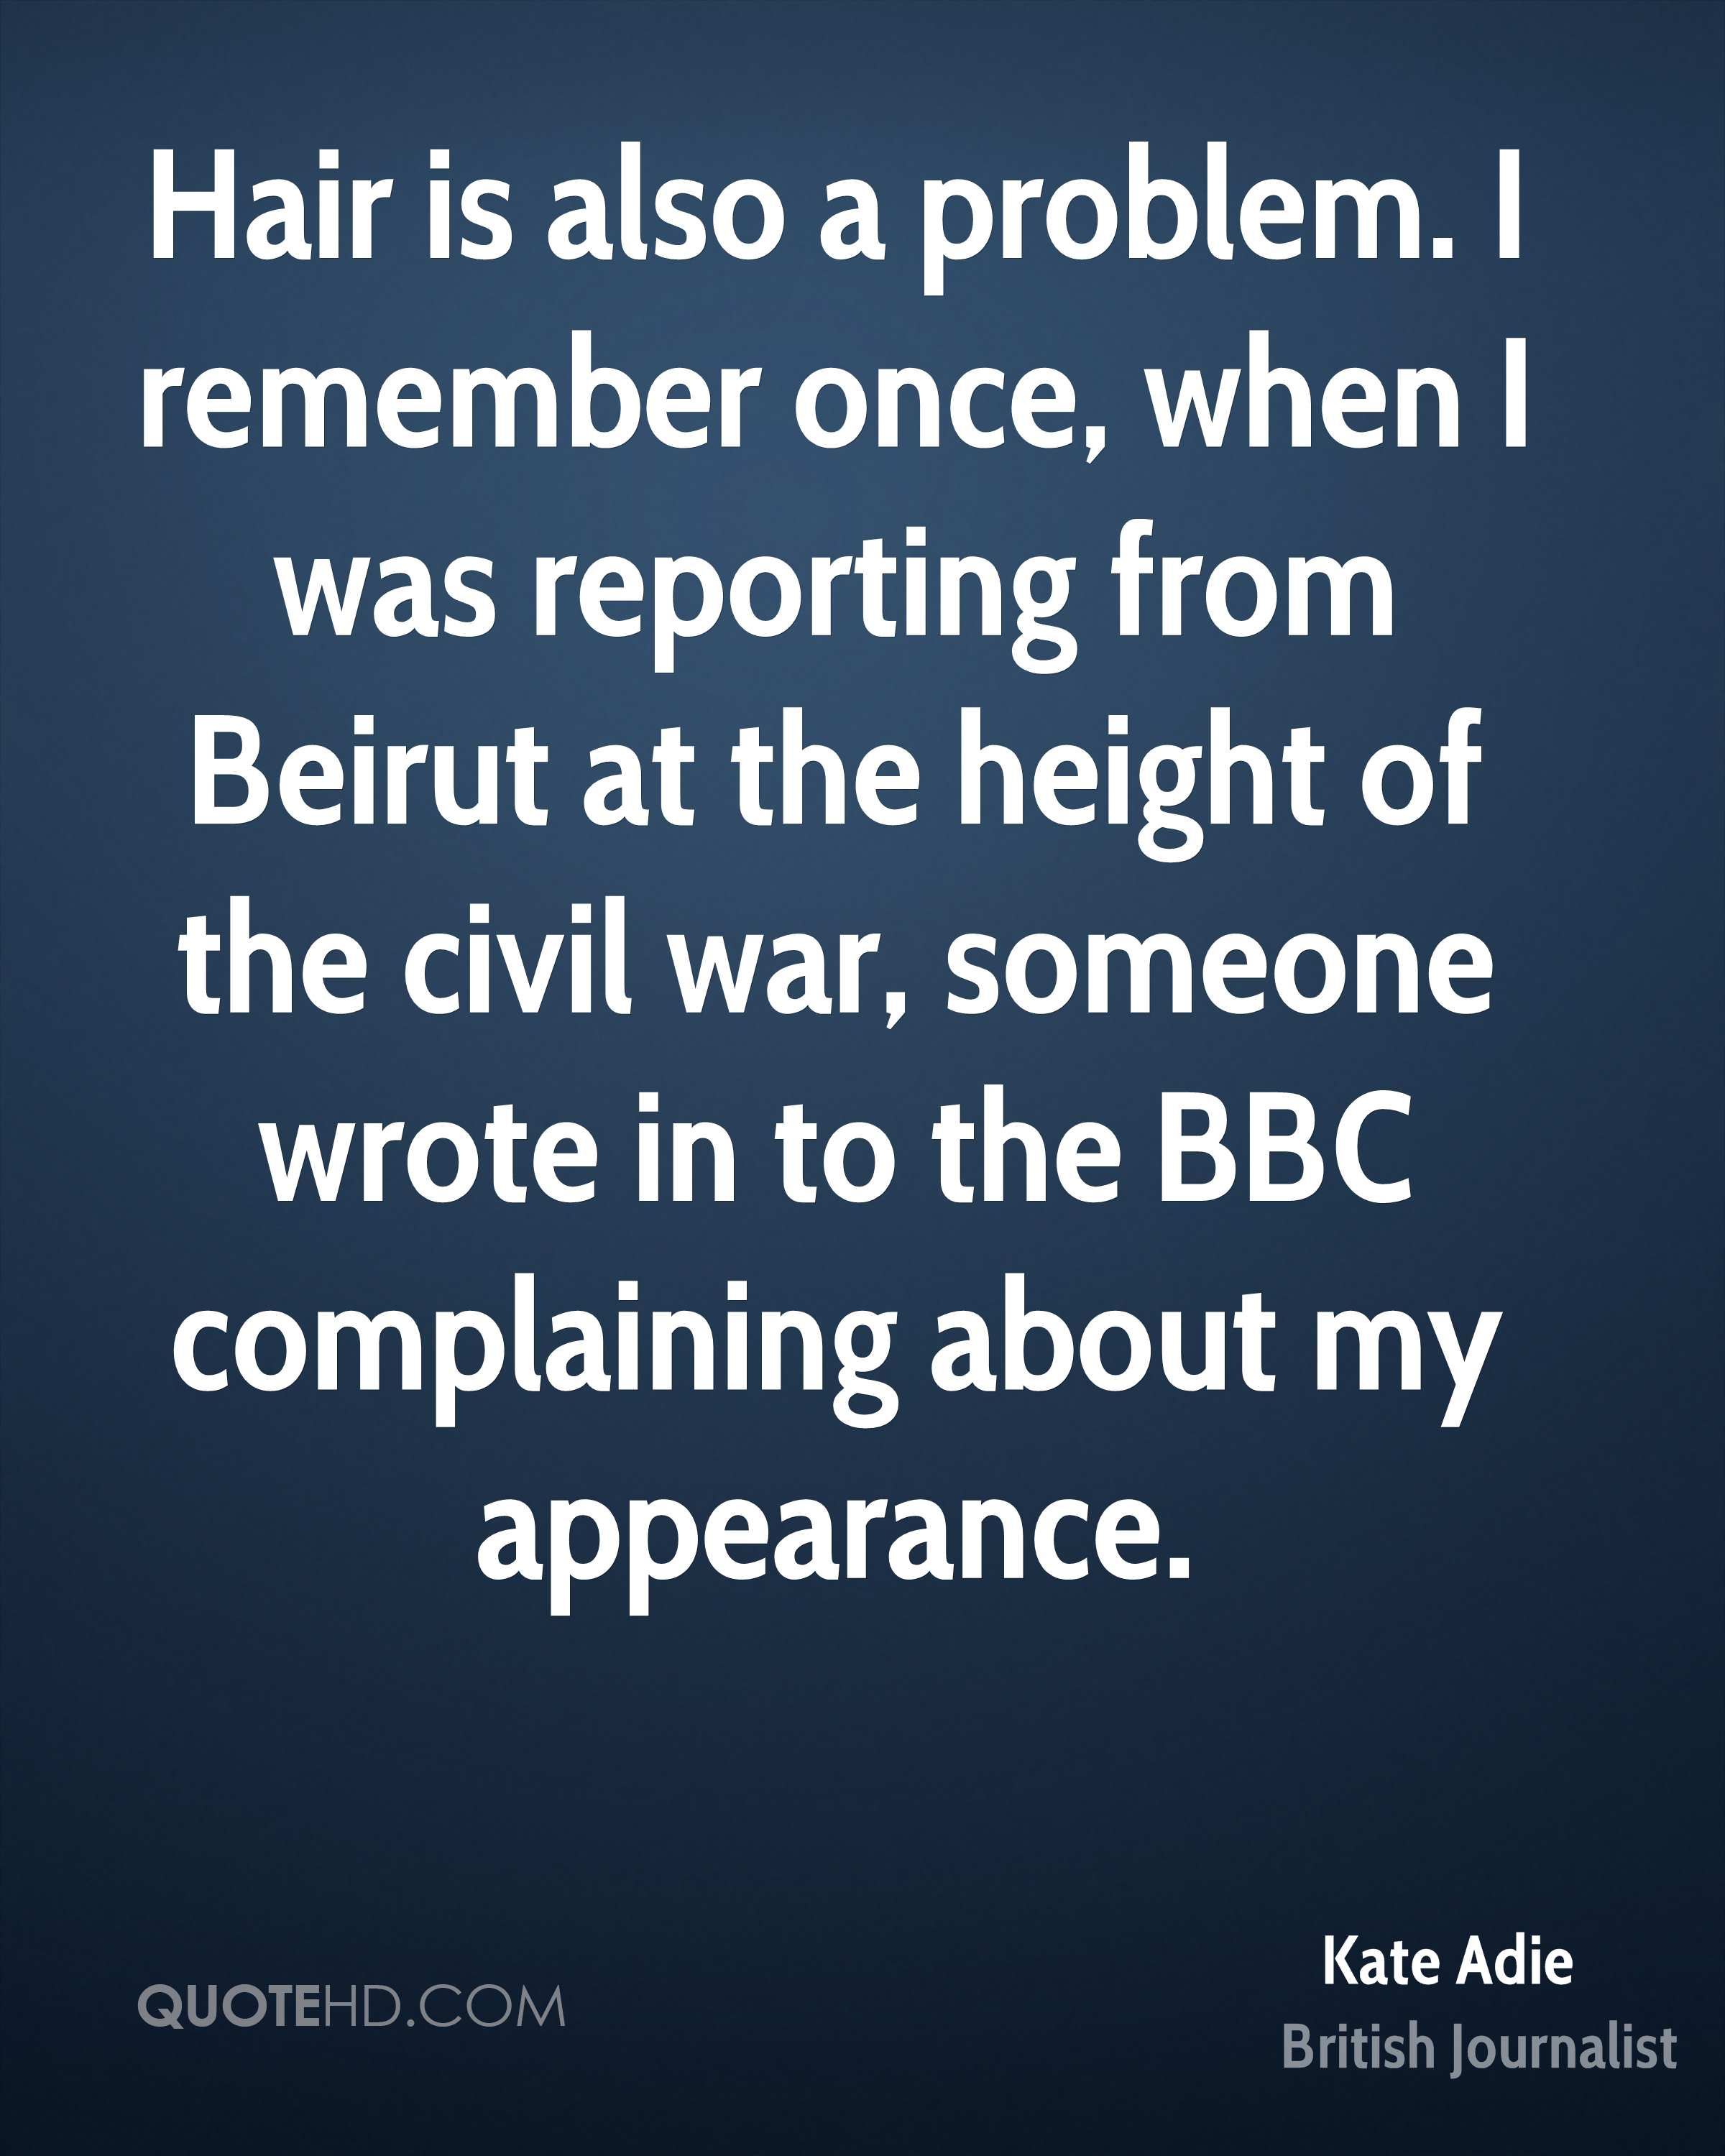 Hair is also a problem. I remember once, when I was reporting from Beirut at the height of the civil war, someone wrote in to the BBC complaining about my appearance.